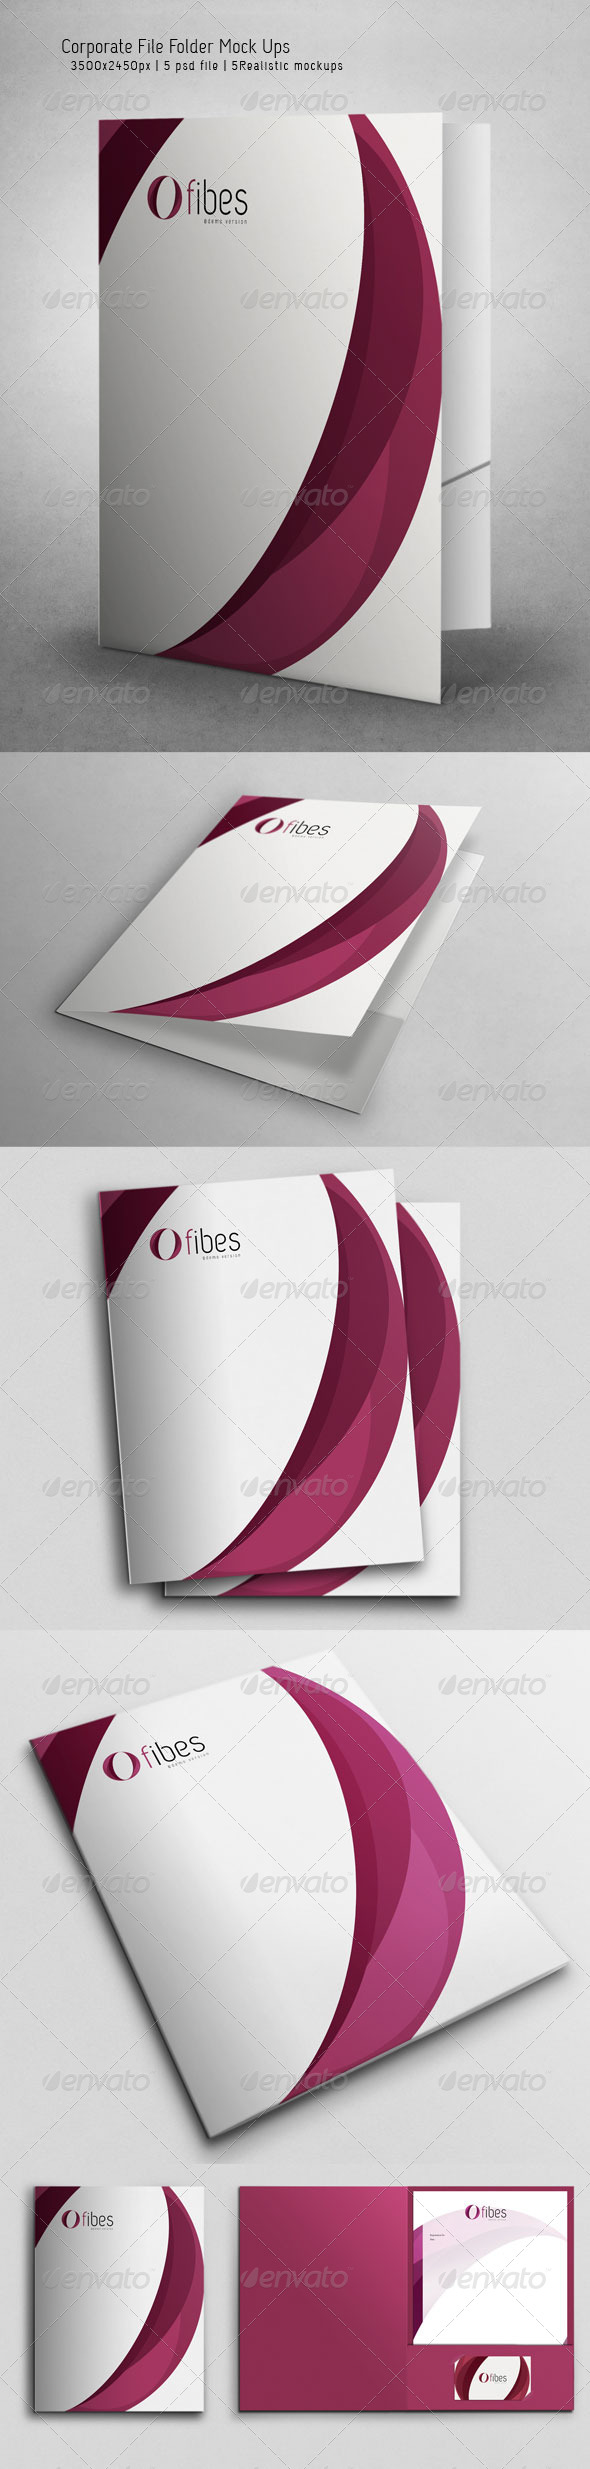 Corporate File Folder Mock Ups - Miscellaneous Print